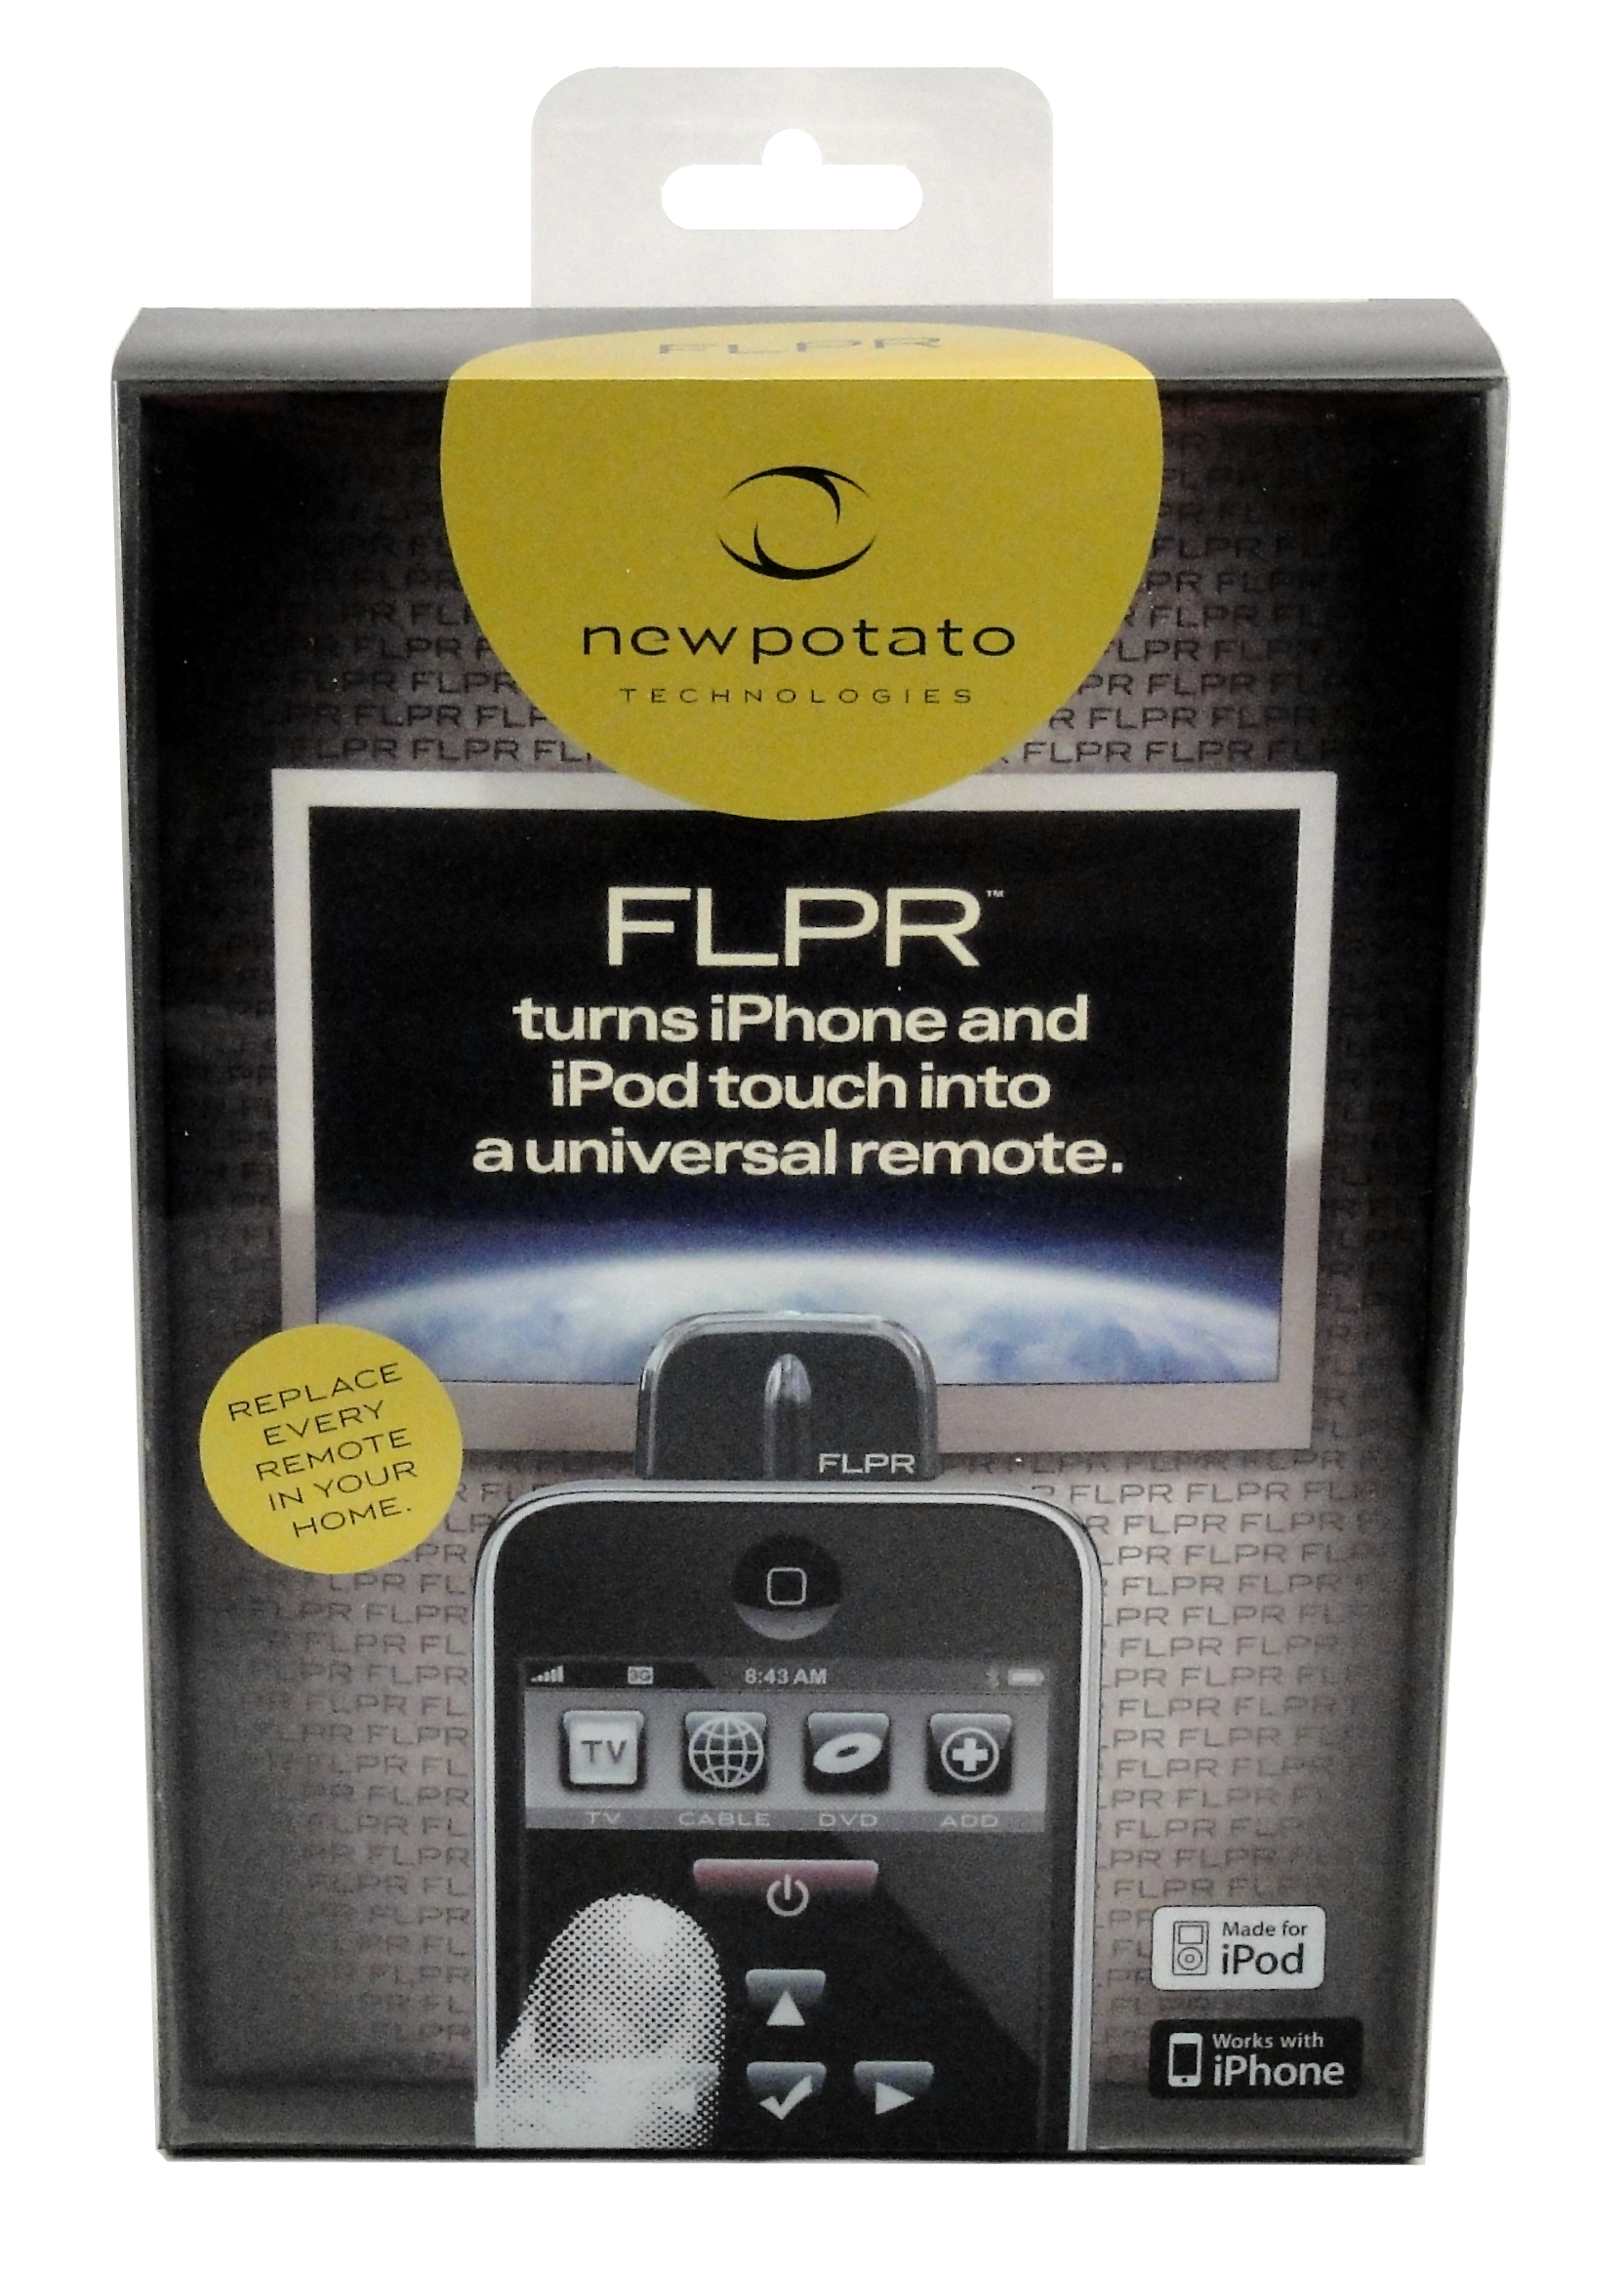 FLPR ACCESSORY - Universal Remote Control iPhone - Hero image · iPhone -  Lifestyle image - TV Display